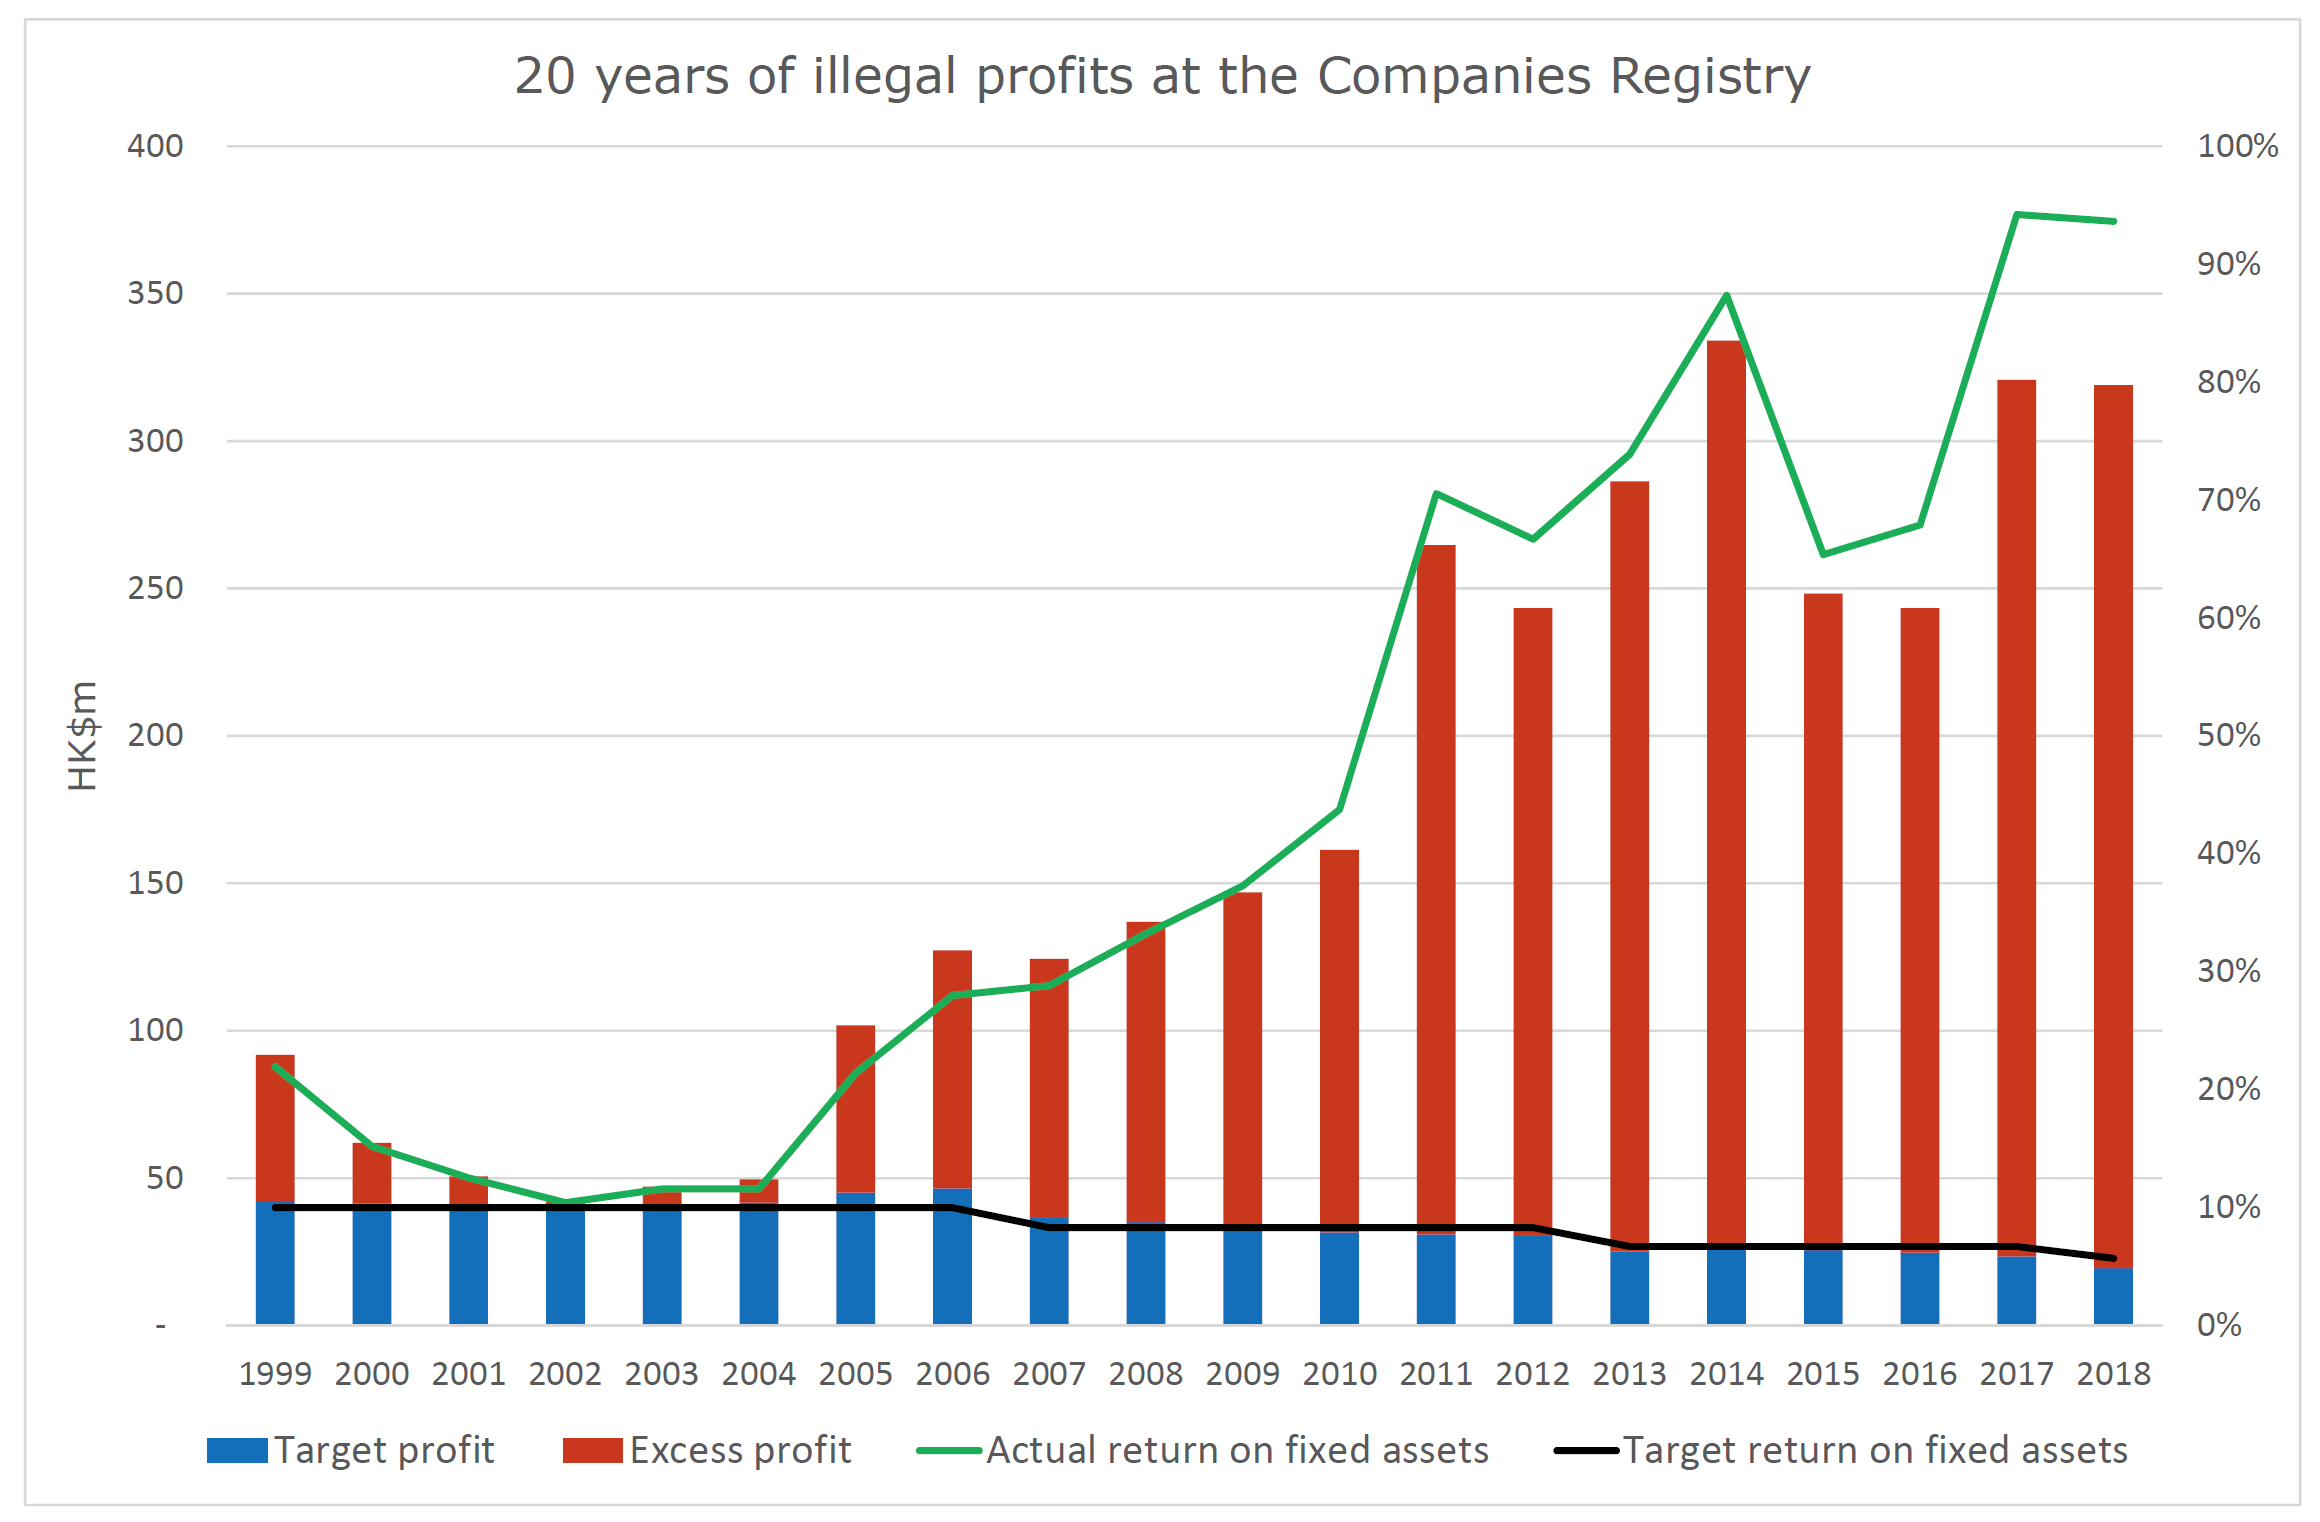 20 years of illegal profits at the Companies Registry